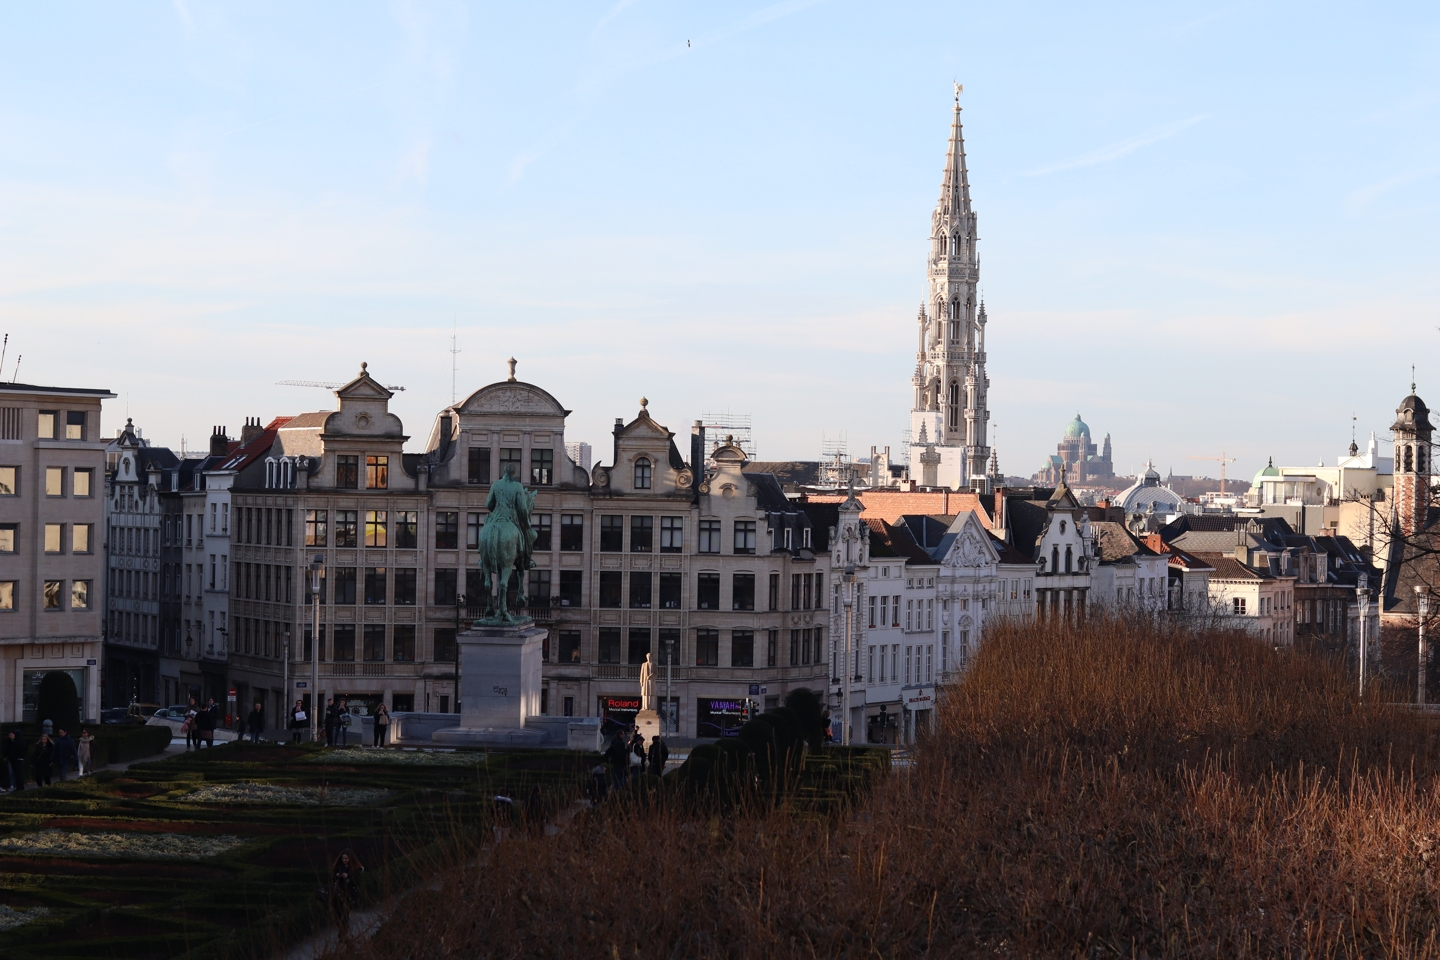 View of Brussels with the tower of the grote markt